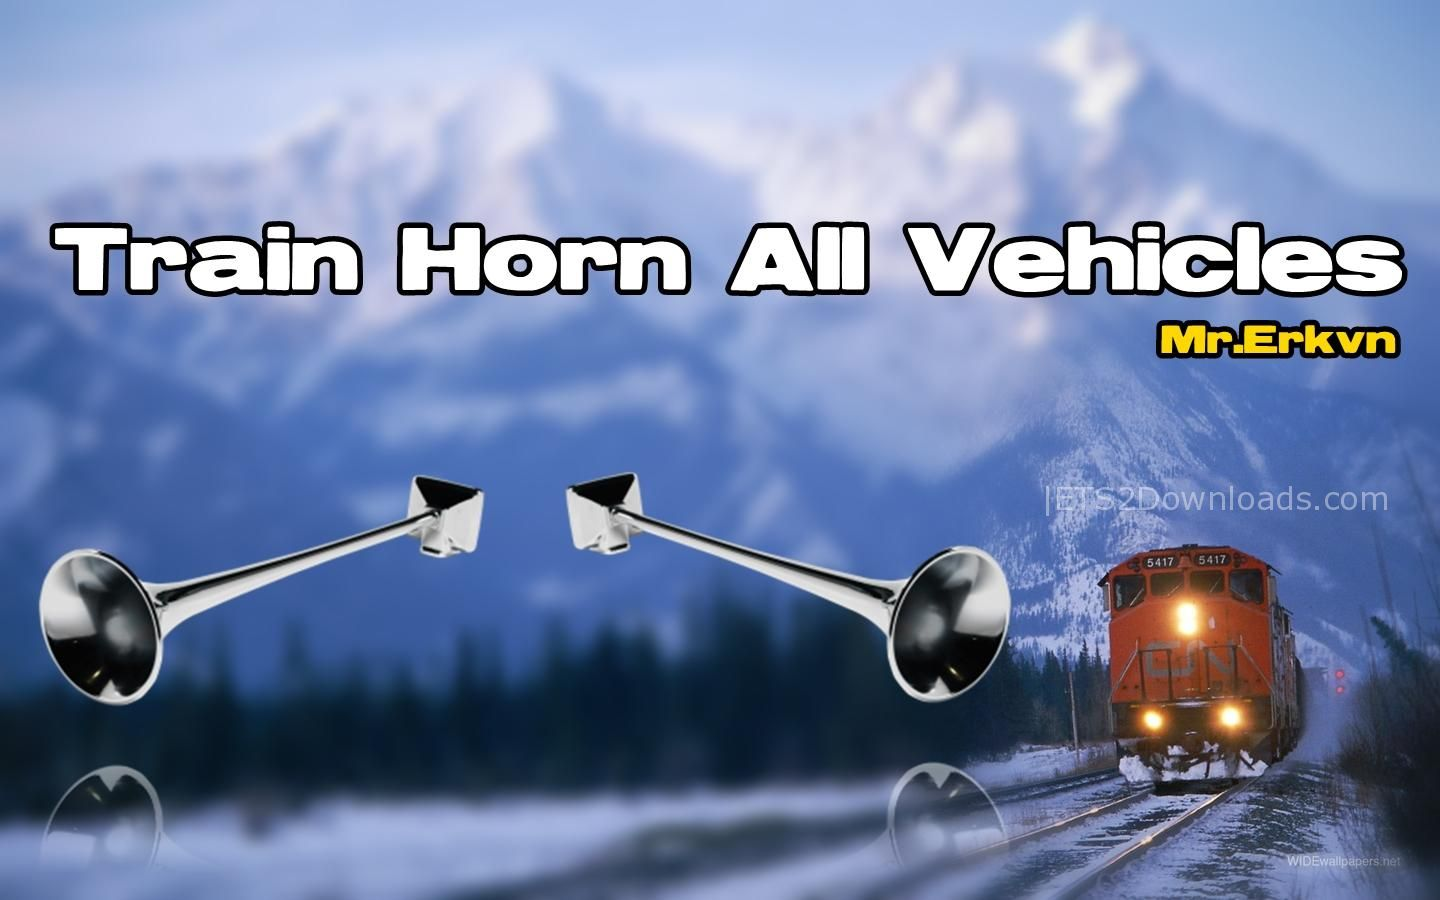 train-horn-for-all-vehicles-1